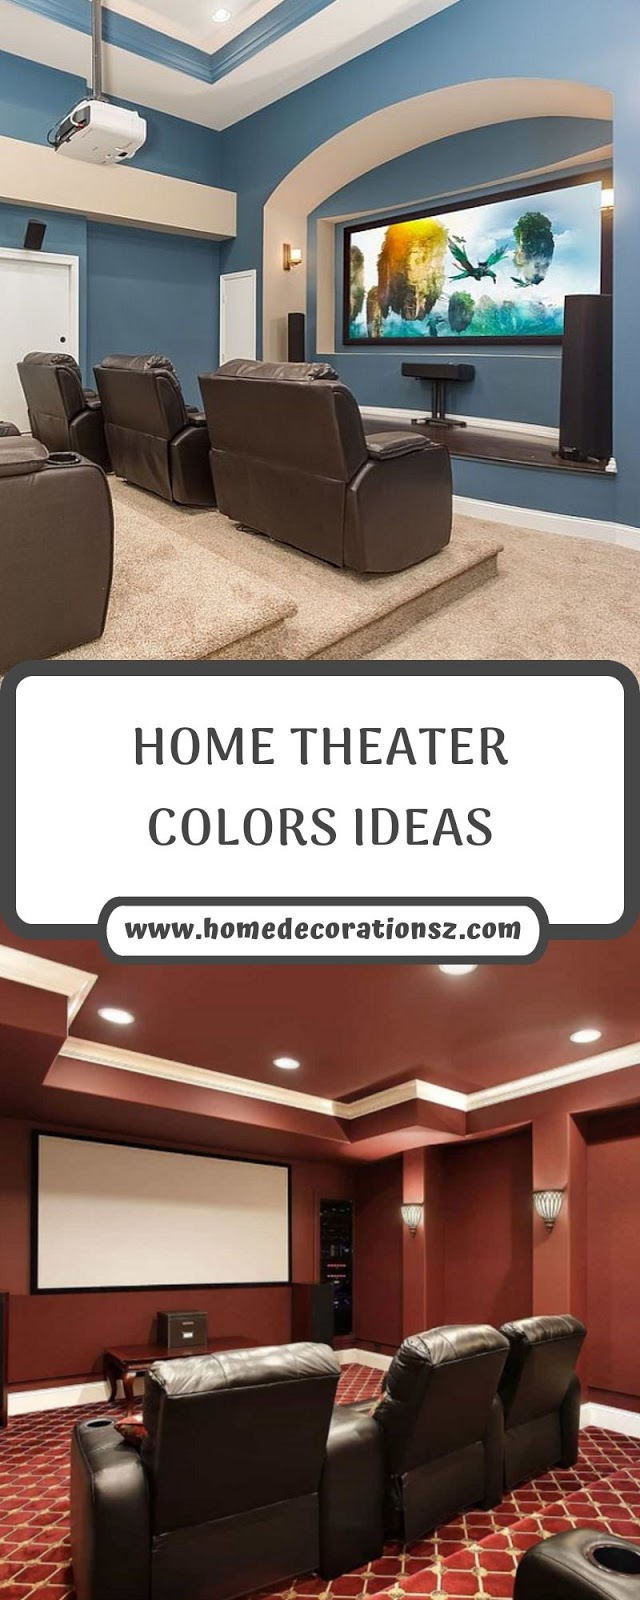 HOME THEATER COLORS IDEAS